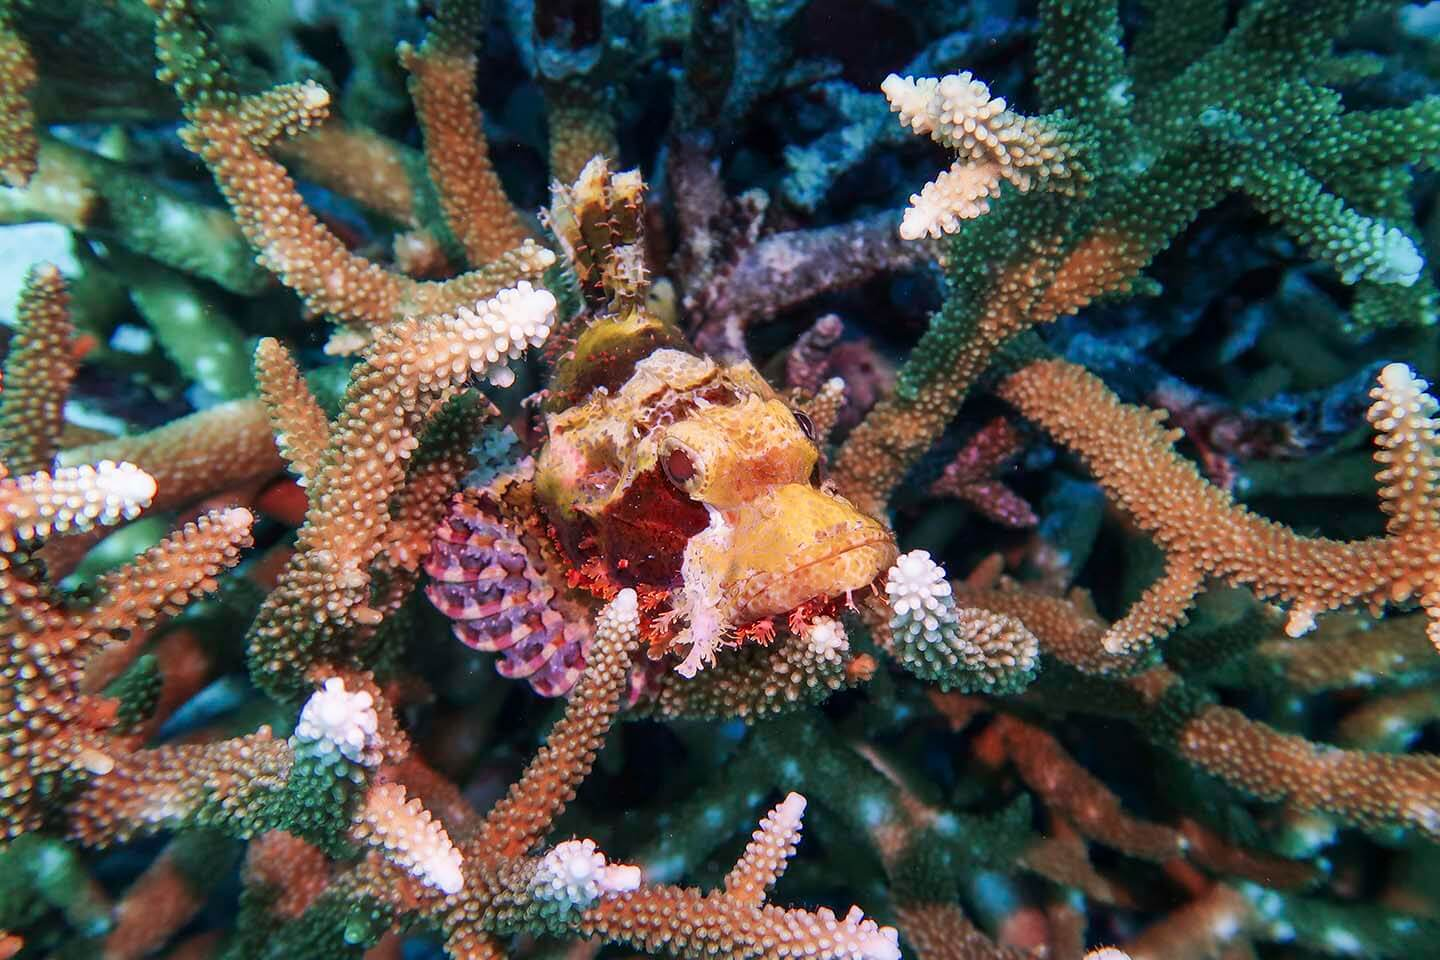 Scorpionfish hiding in the branching Acropora